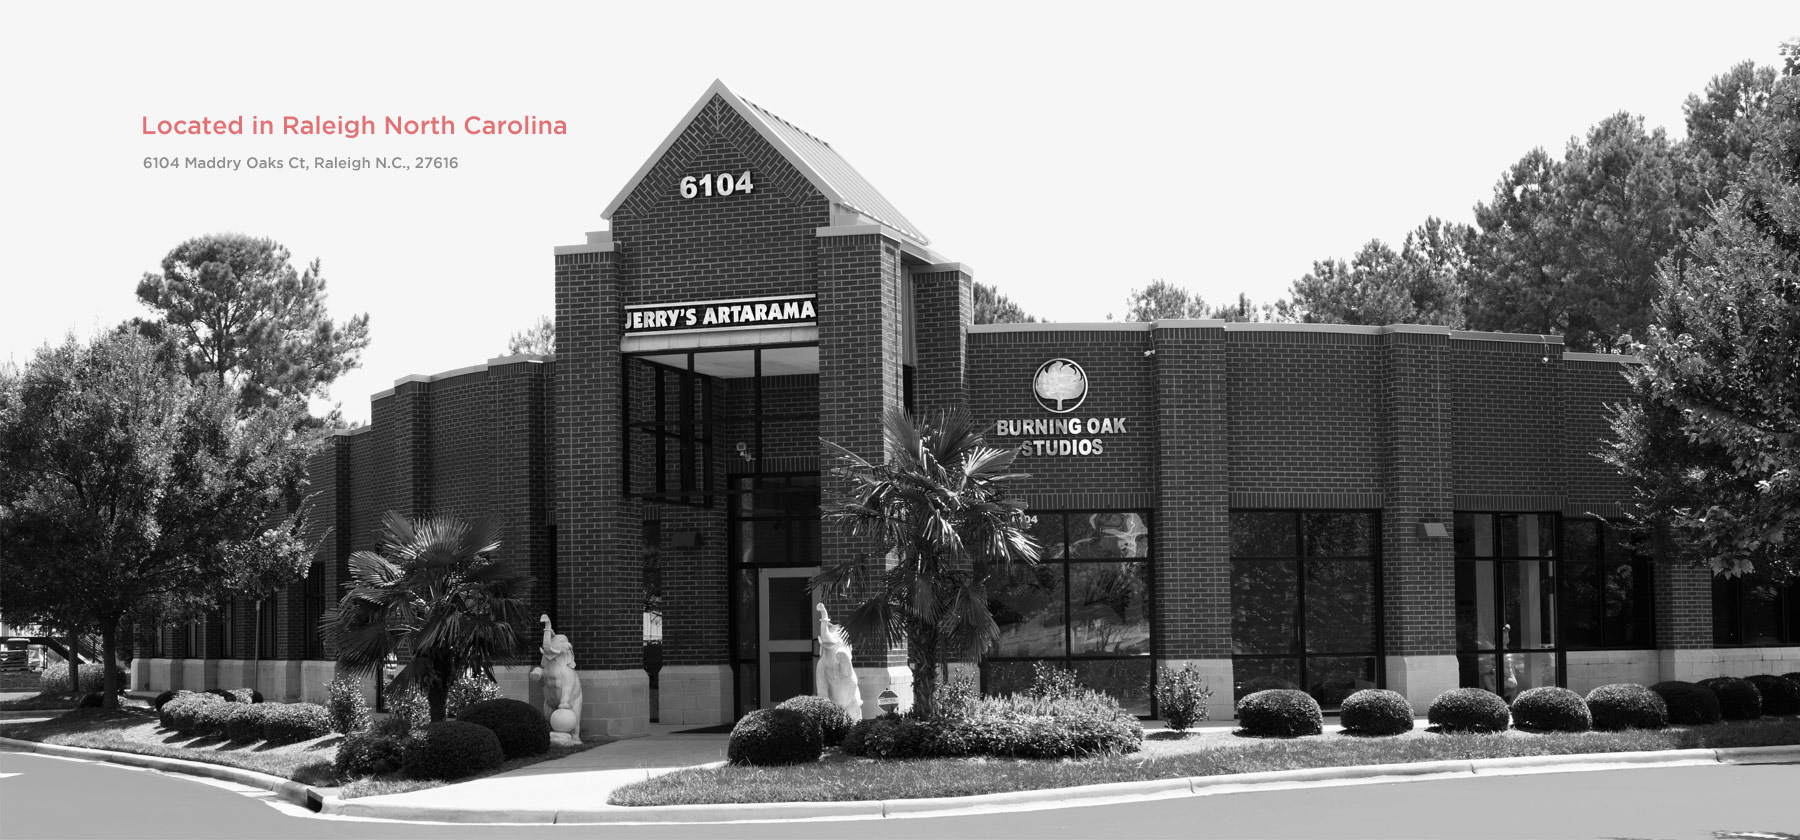 Jerry's Artarama Art Supplies- Main Corporate Headquarters